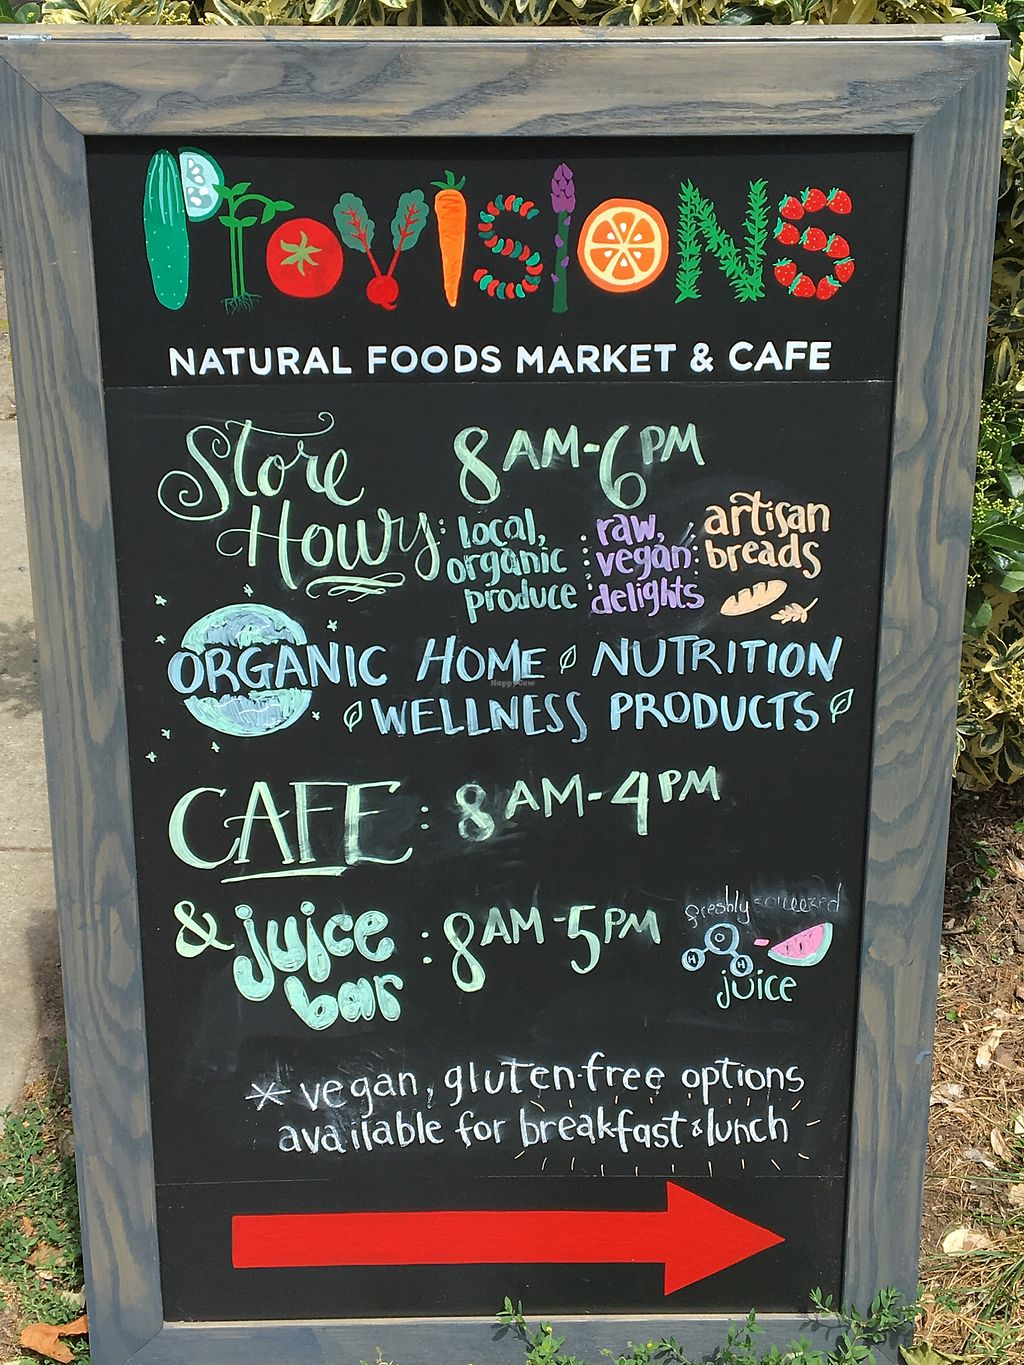 "Photo of Provisions Natural Foods Cafe  by <a href=""/members/profile/JJones315"">JJones315</a> <br/>The Board <br/> June 29, 2017  - <a href='/contact/abuse/image/25638/274920'>Report</a>"